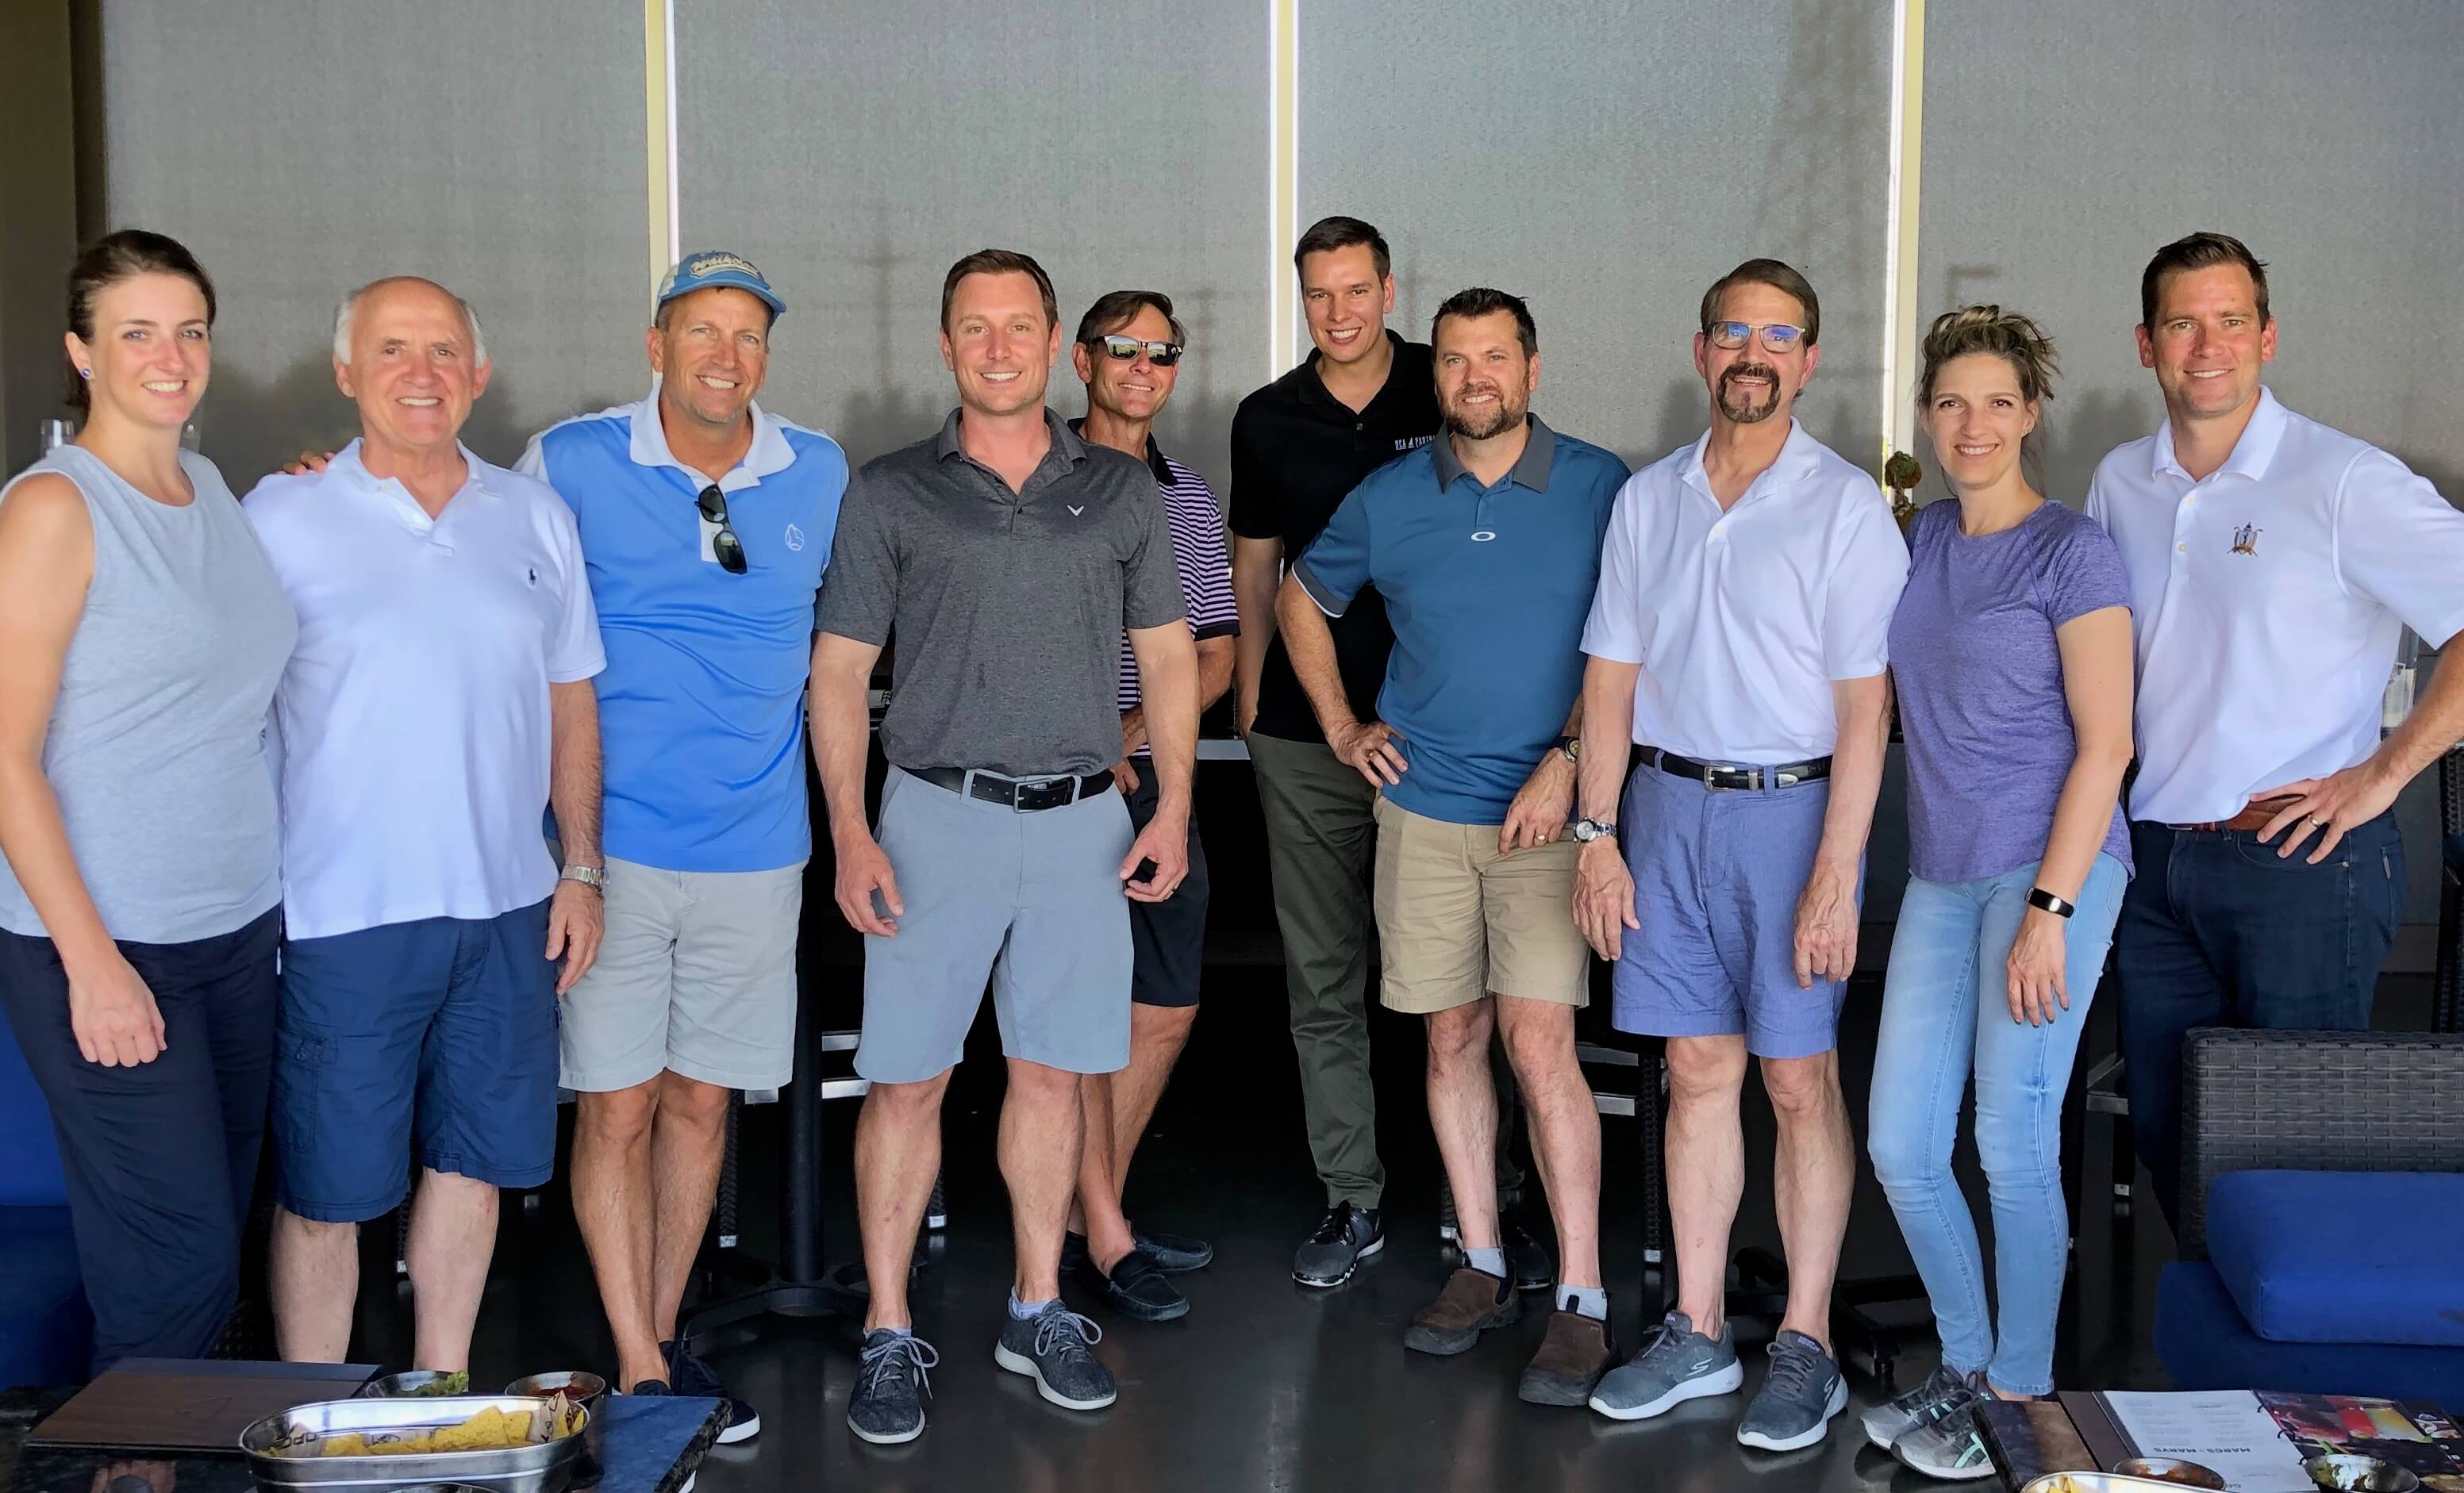 The DCA team at Topgolf